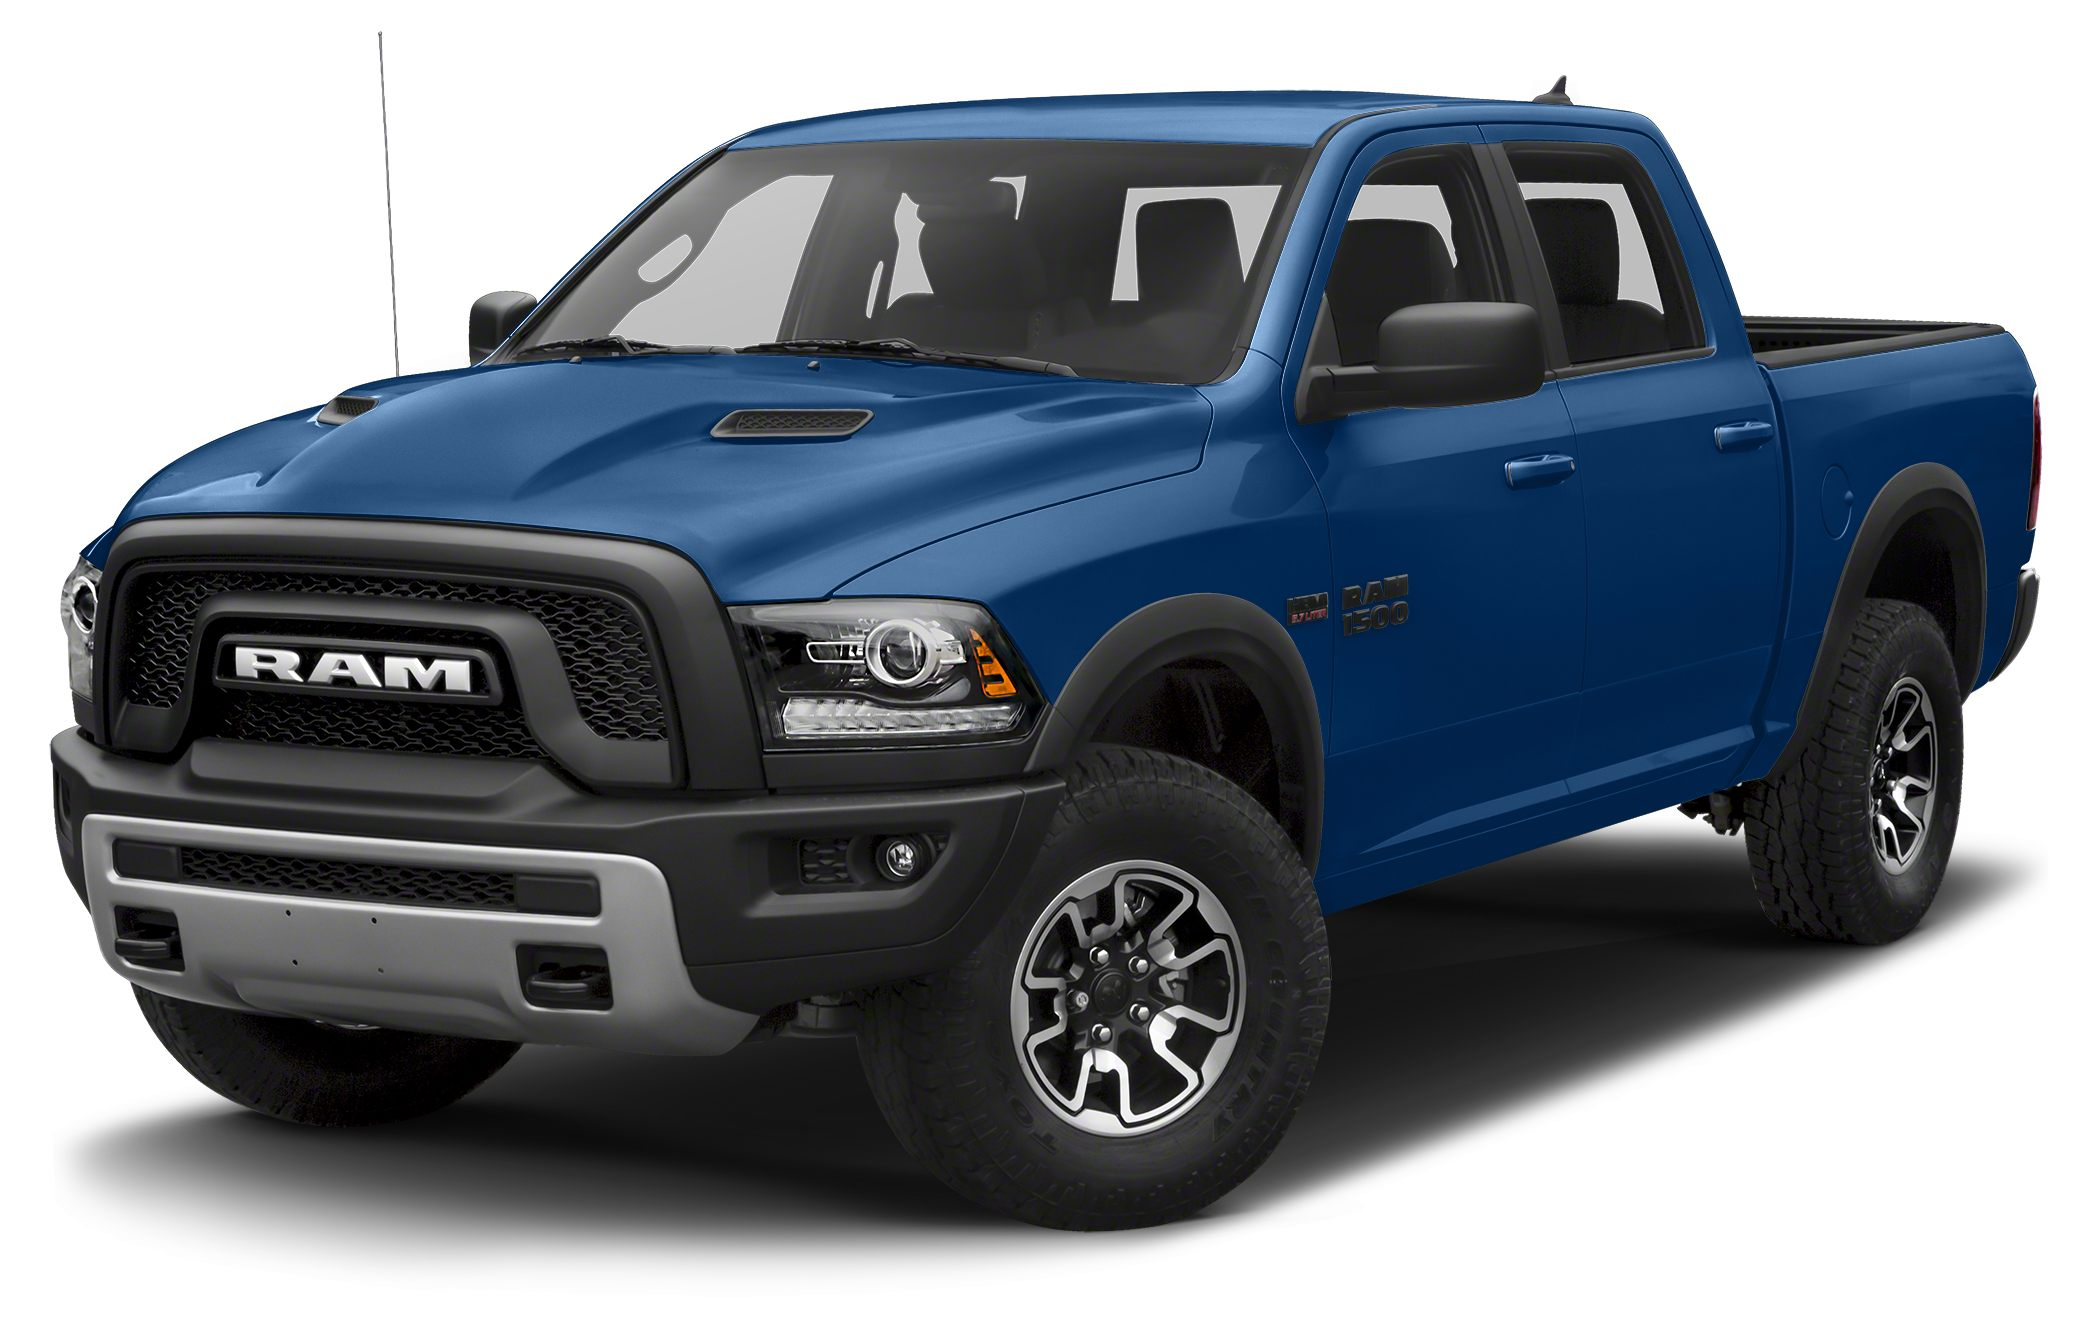 2017 RAM 1500 Rebel This wonderful Vehicle is just waiting to bring the right owner lots of joy an